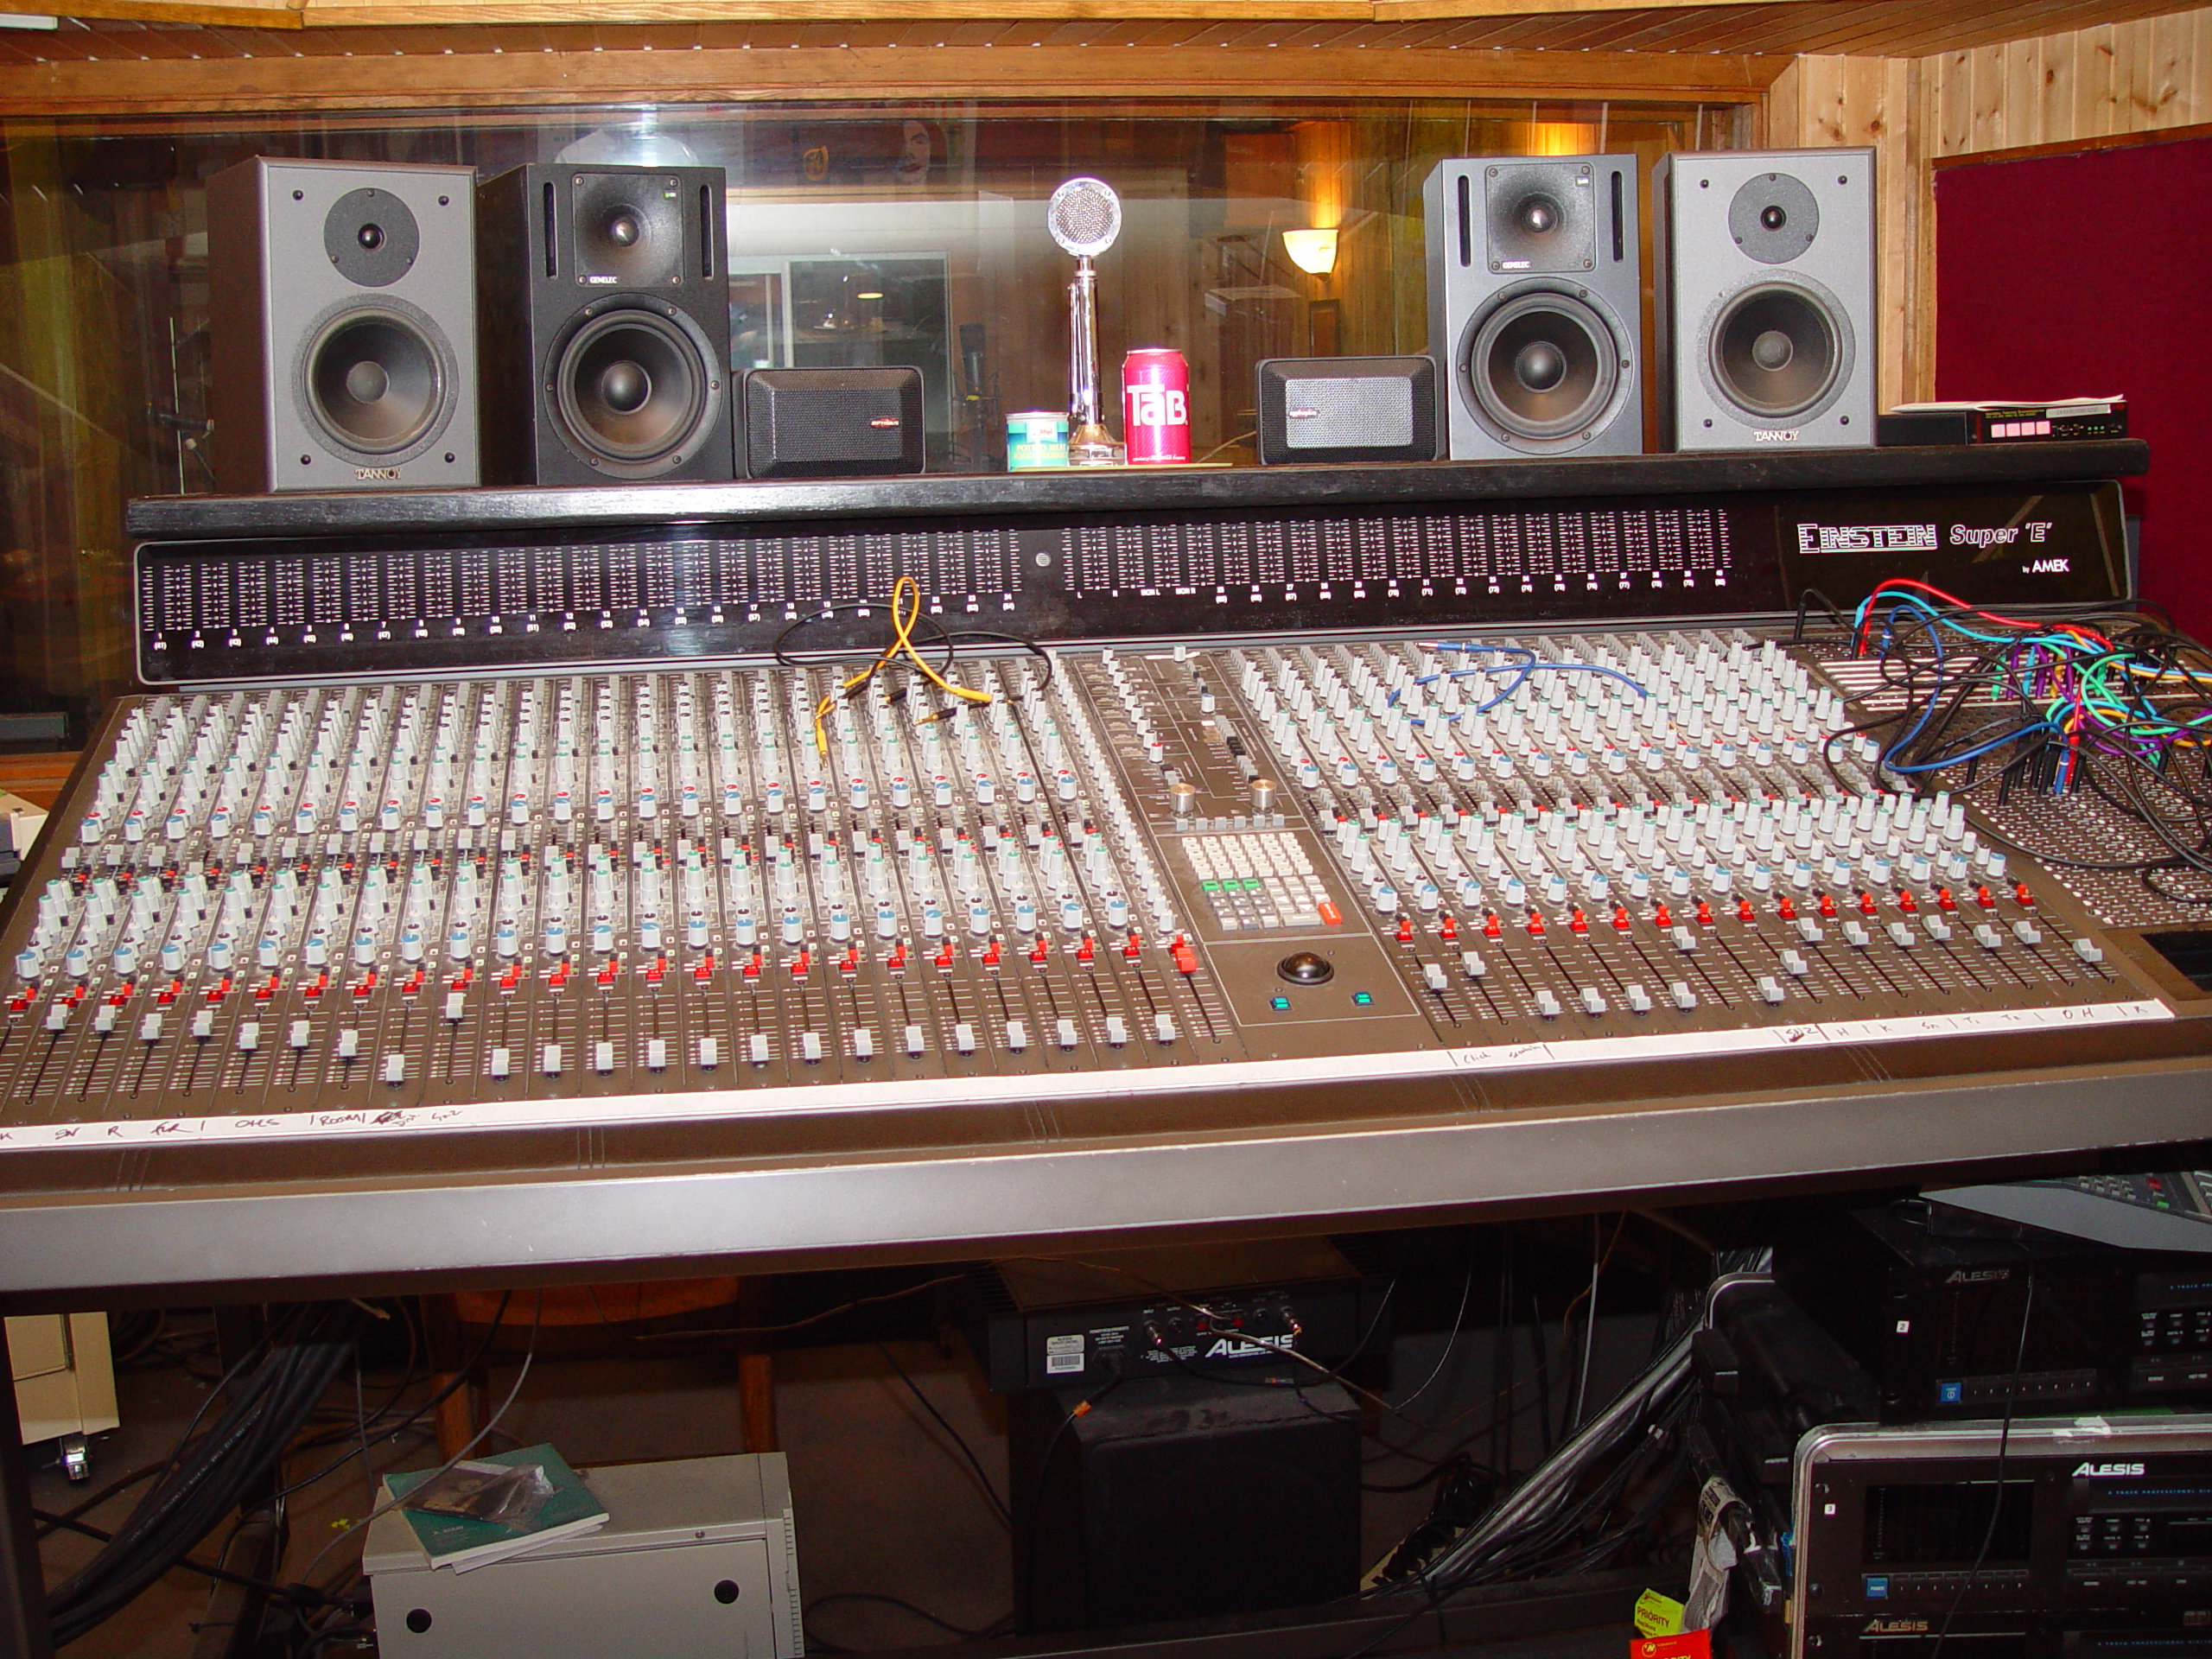 The console at Jupiter Studios